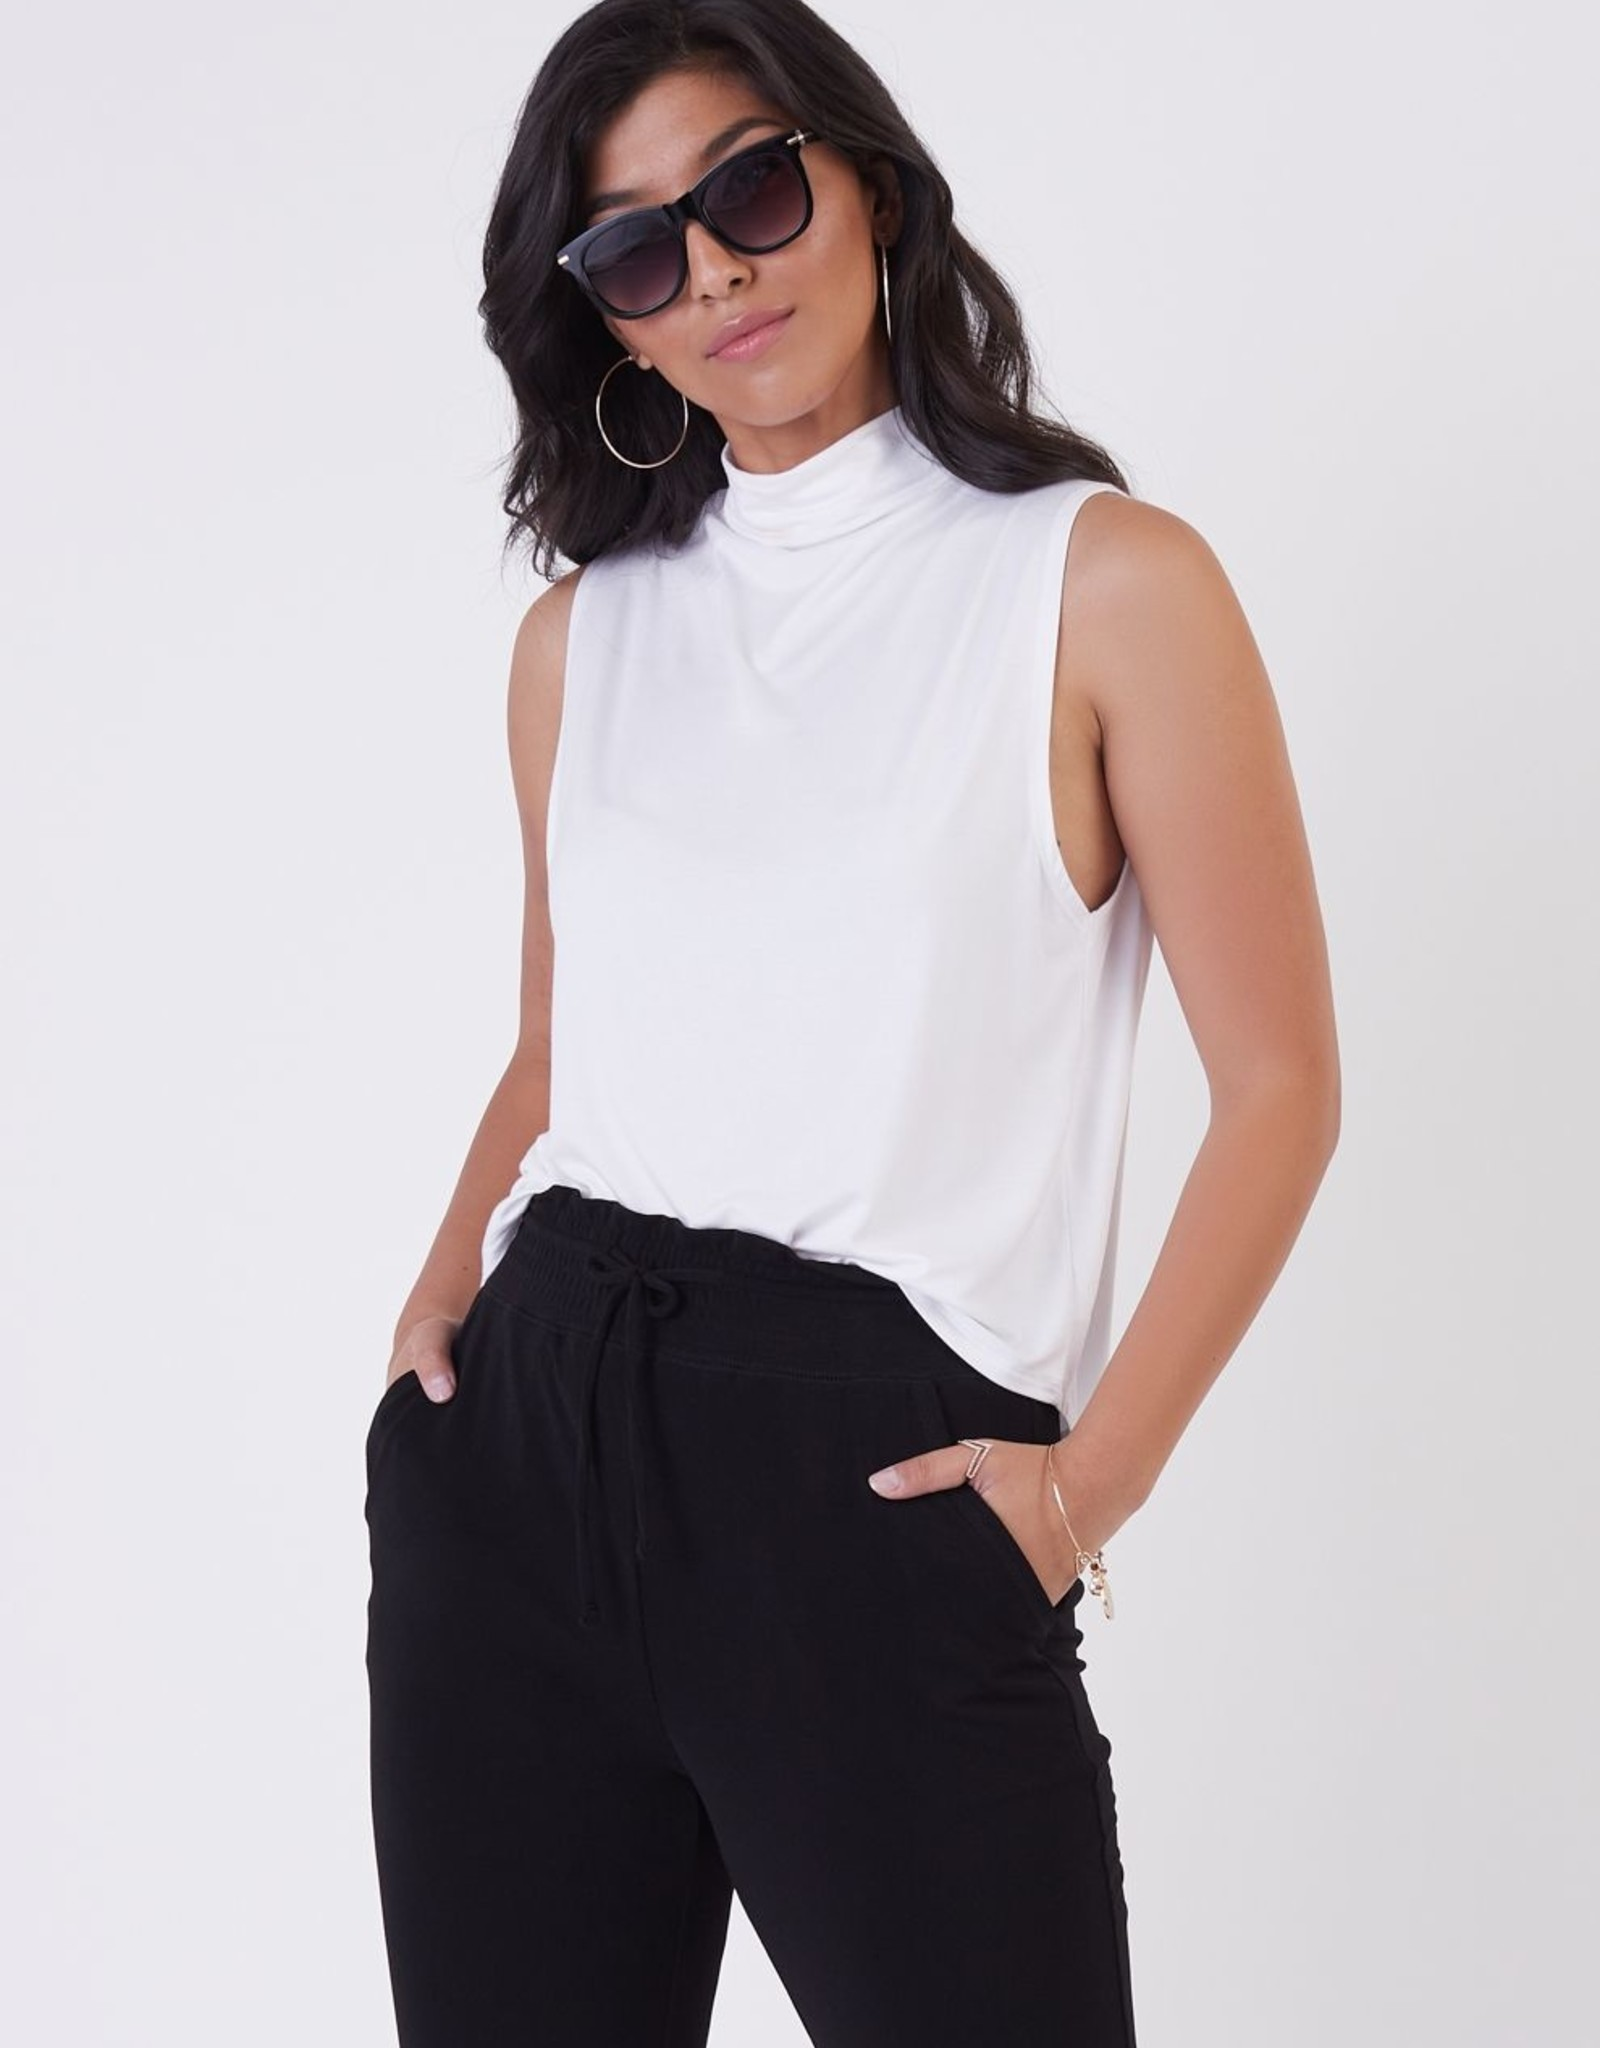 Black Tape Soft Mock Neck Top